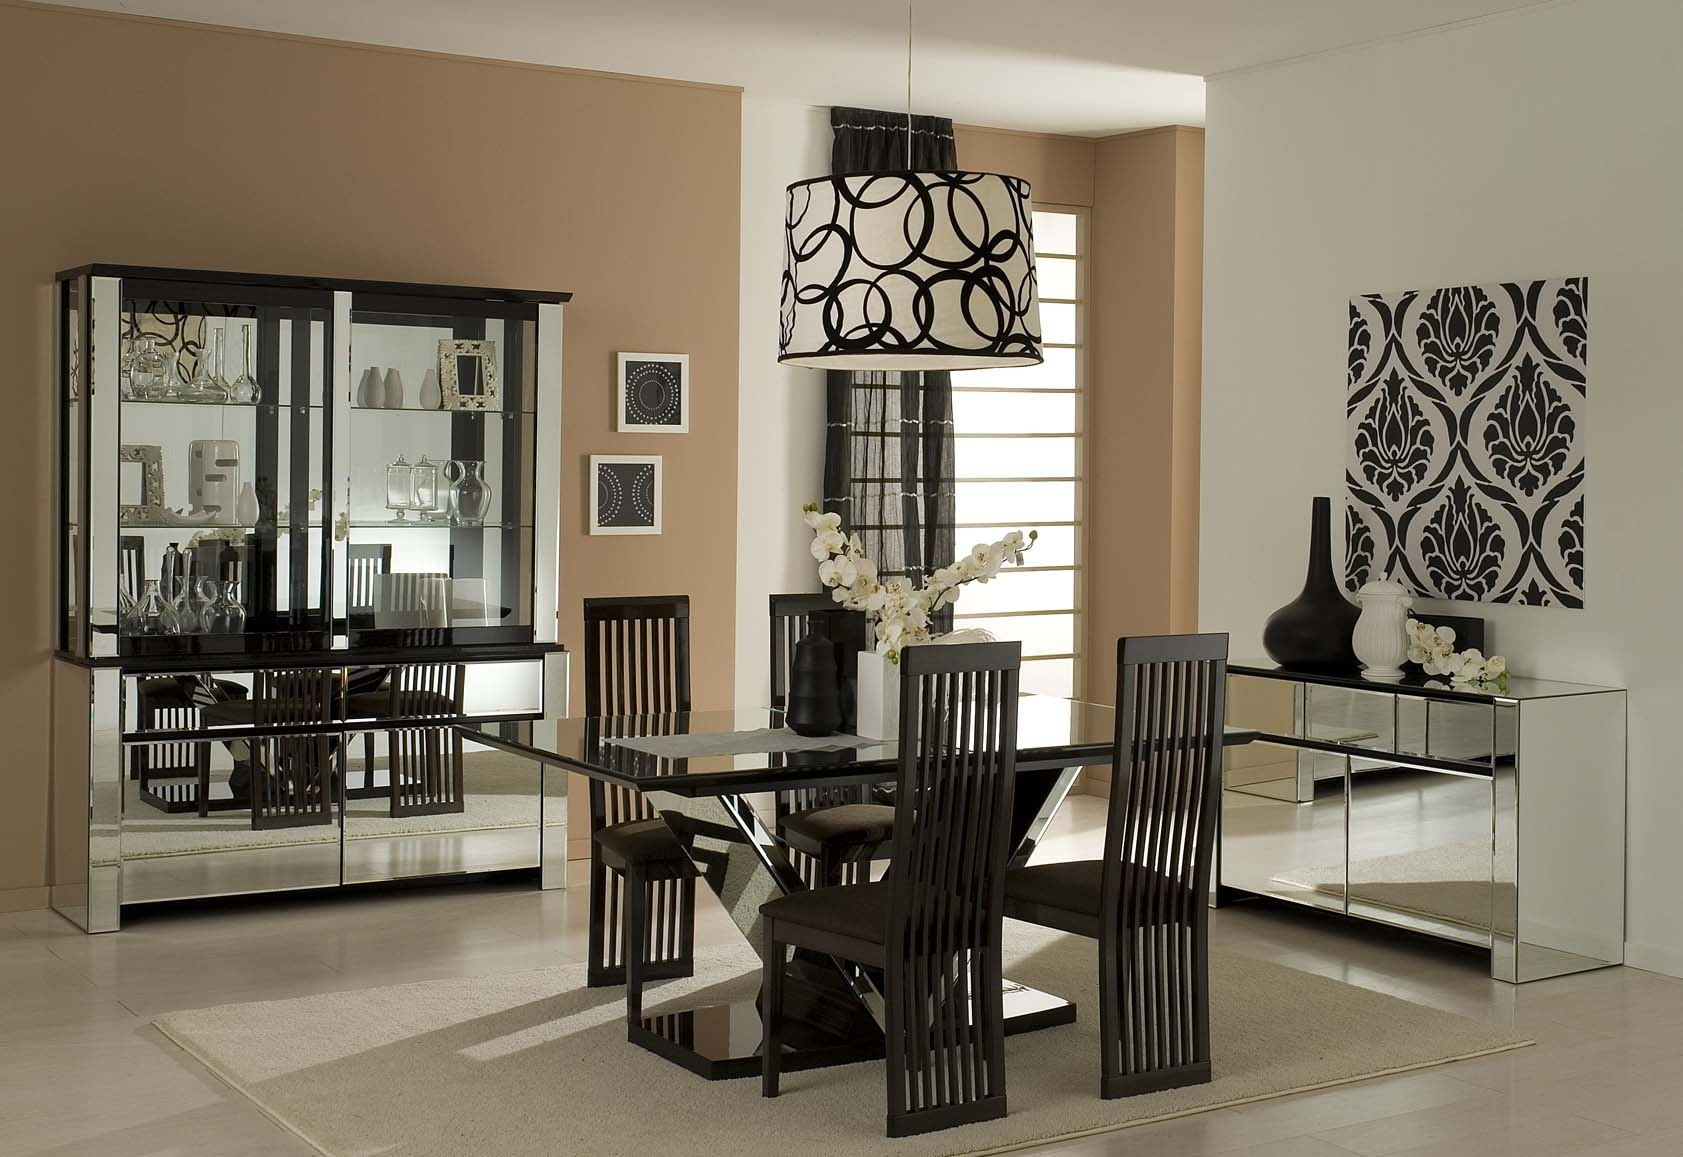 ideas for decorating a dining room photo - 2